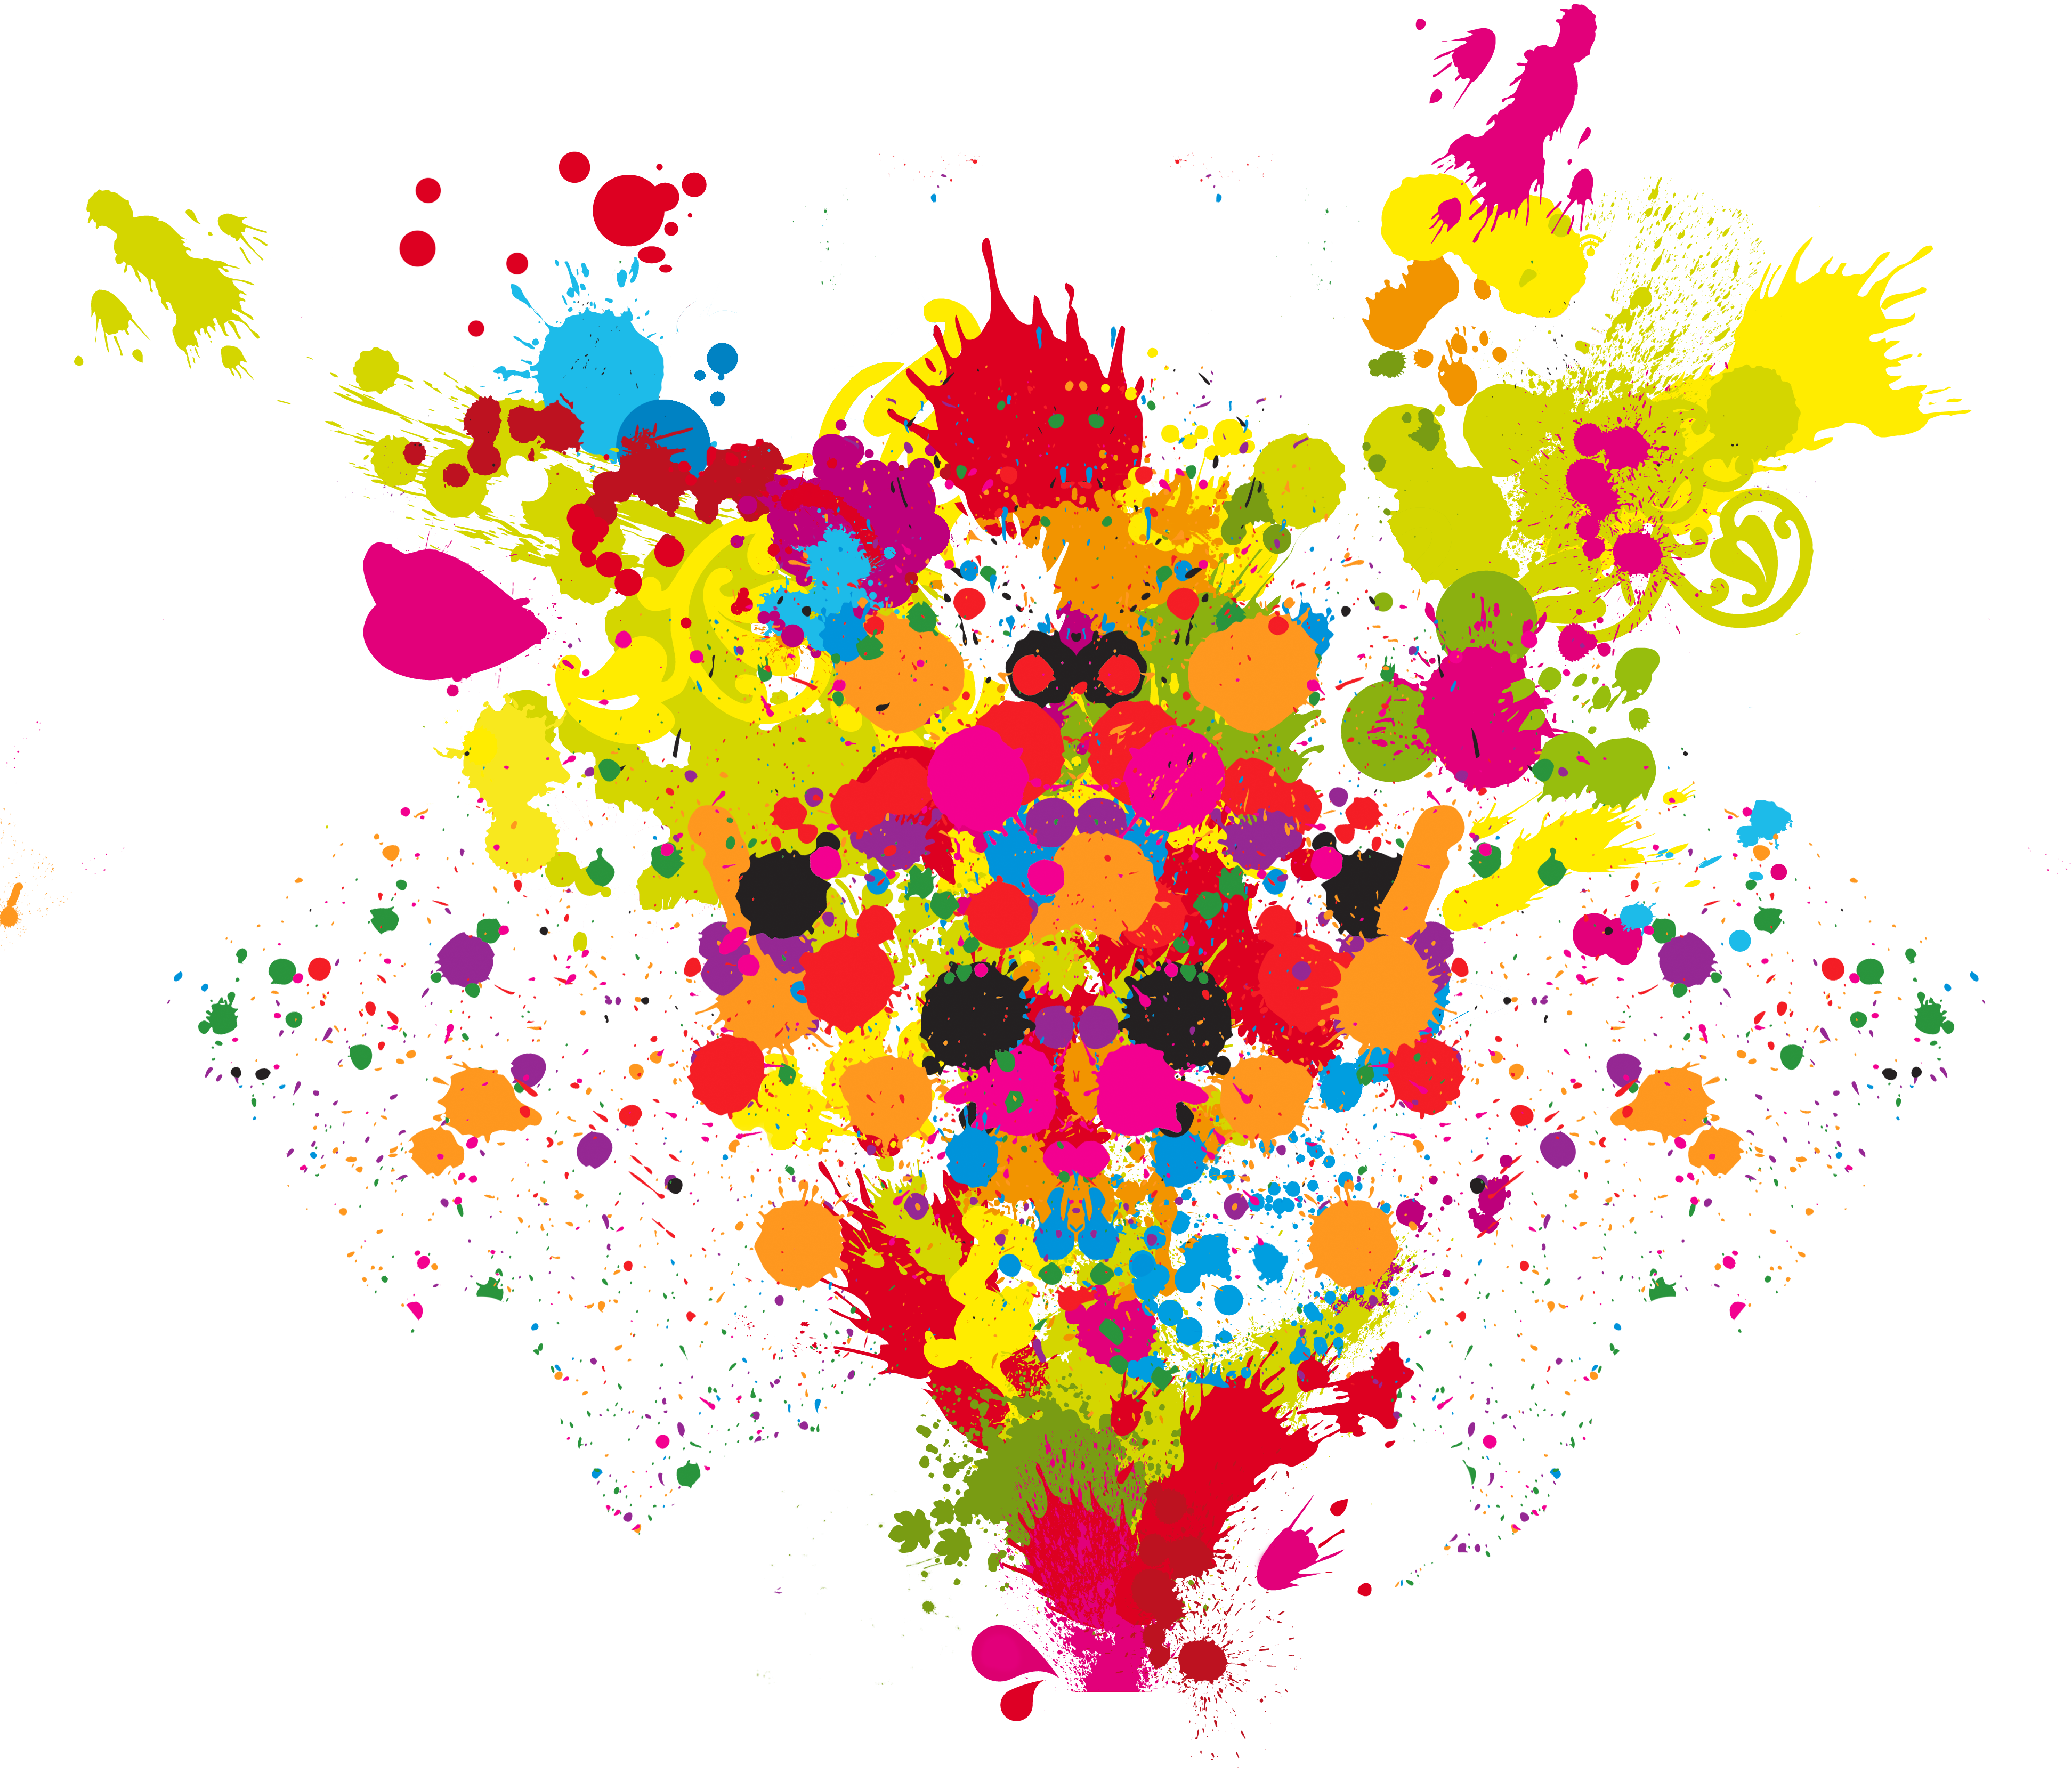 Paint splatter .png. Google image result for